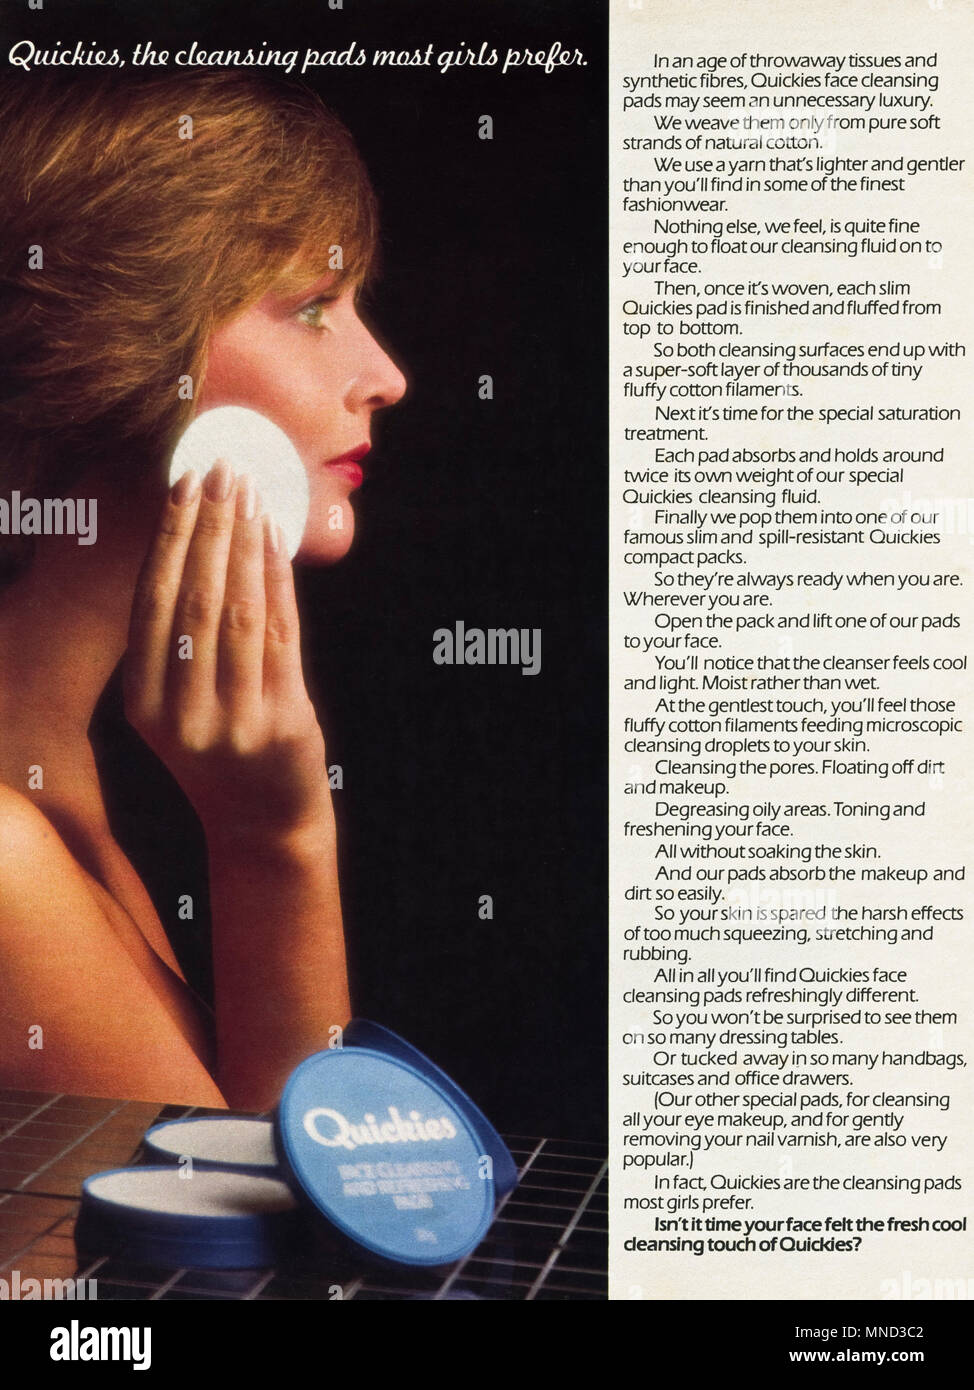 1980s original old vintage advertisement advertising Quickies skin cleansing pads for women advert in English magazine circa 1980 - Stock Image